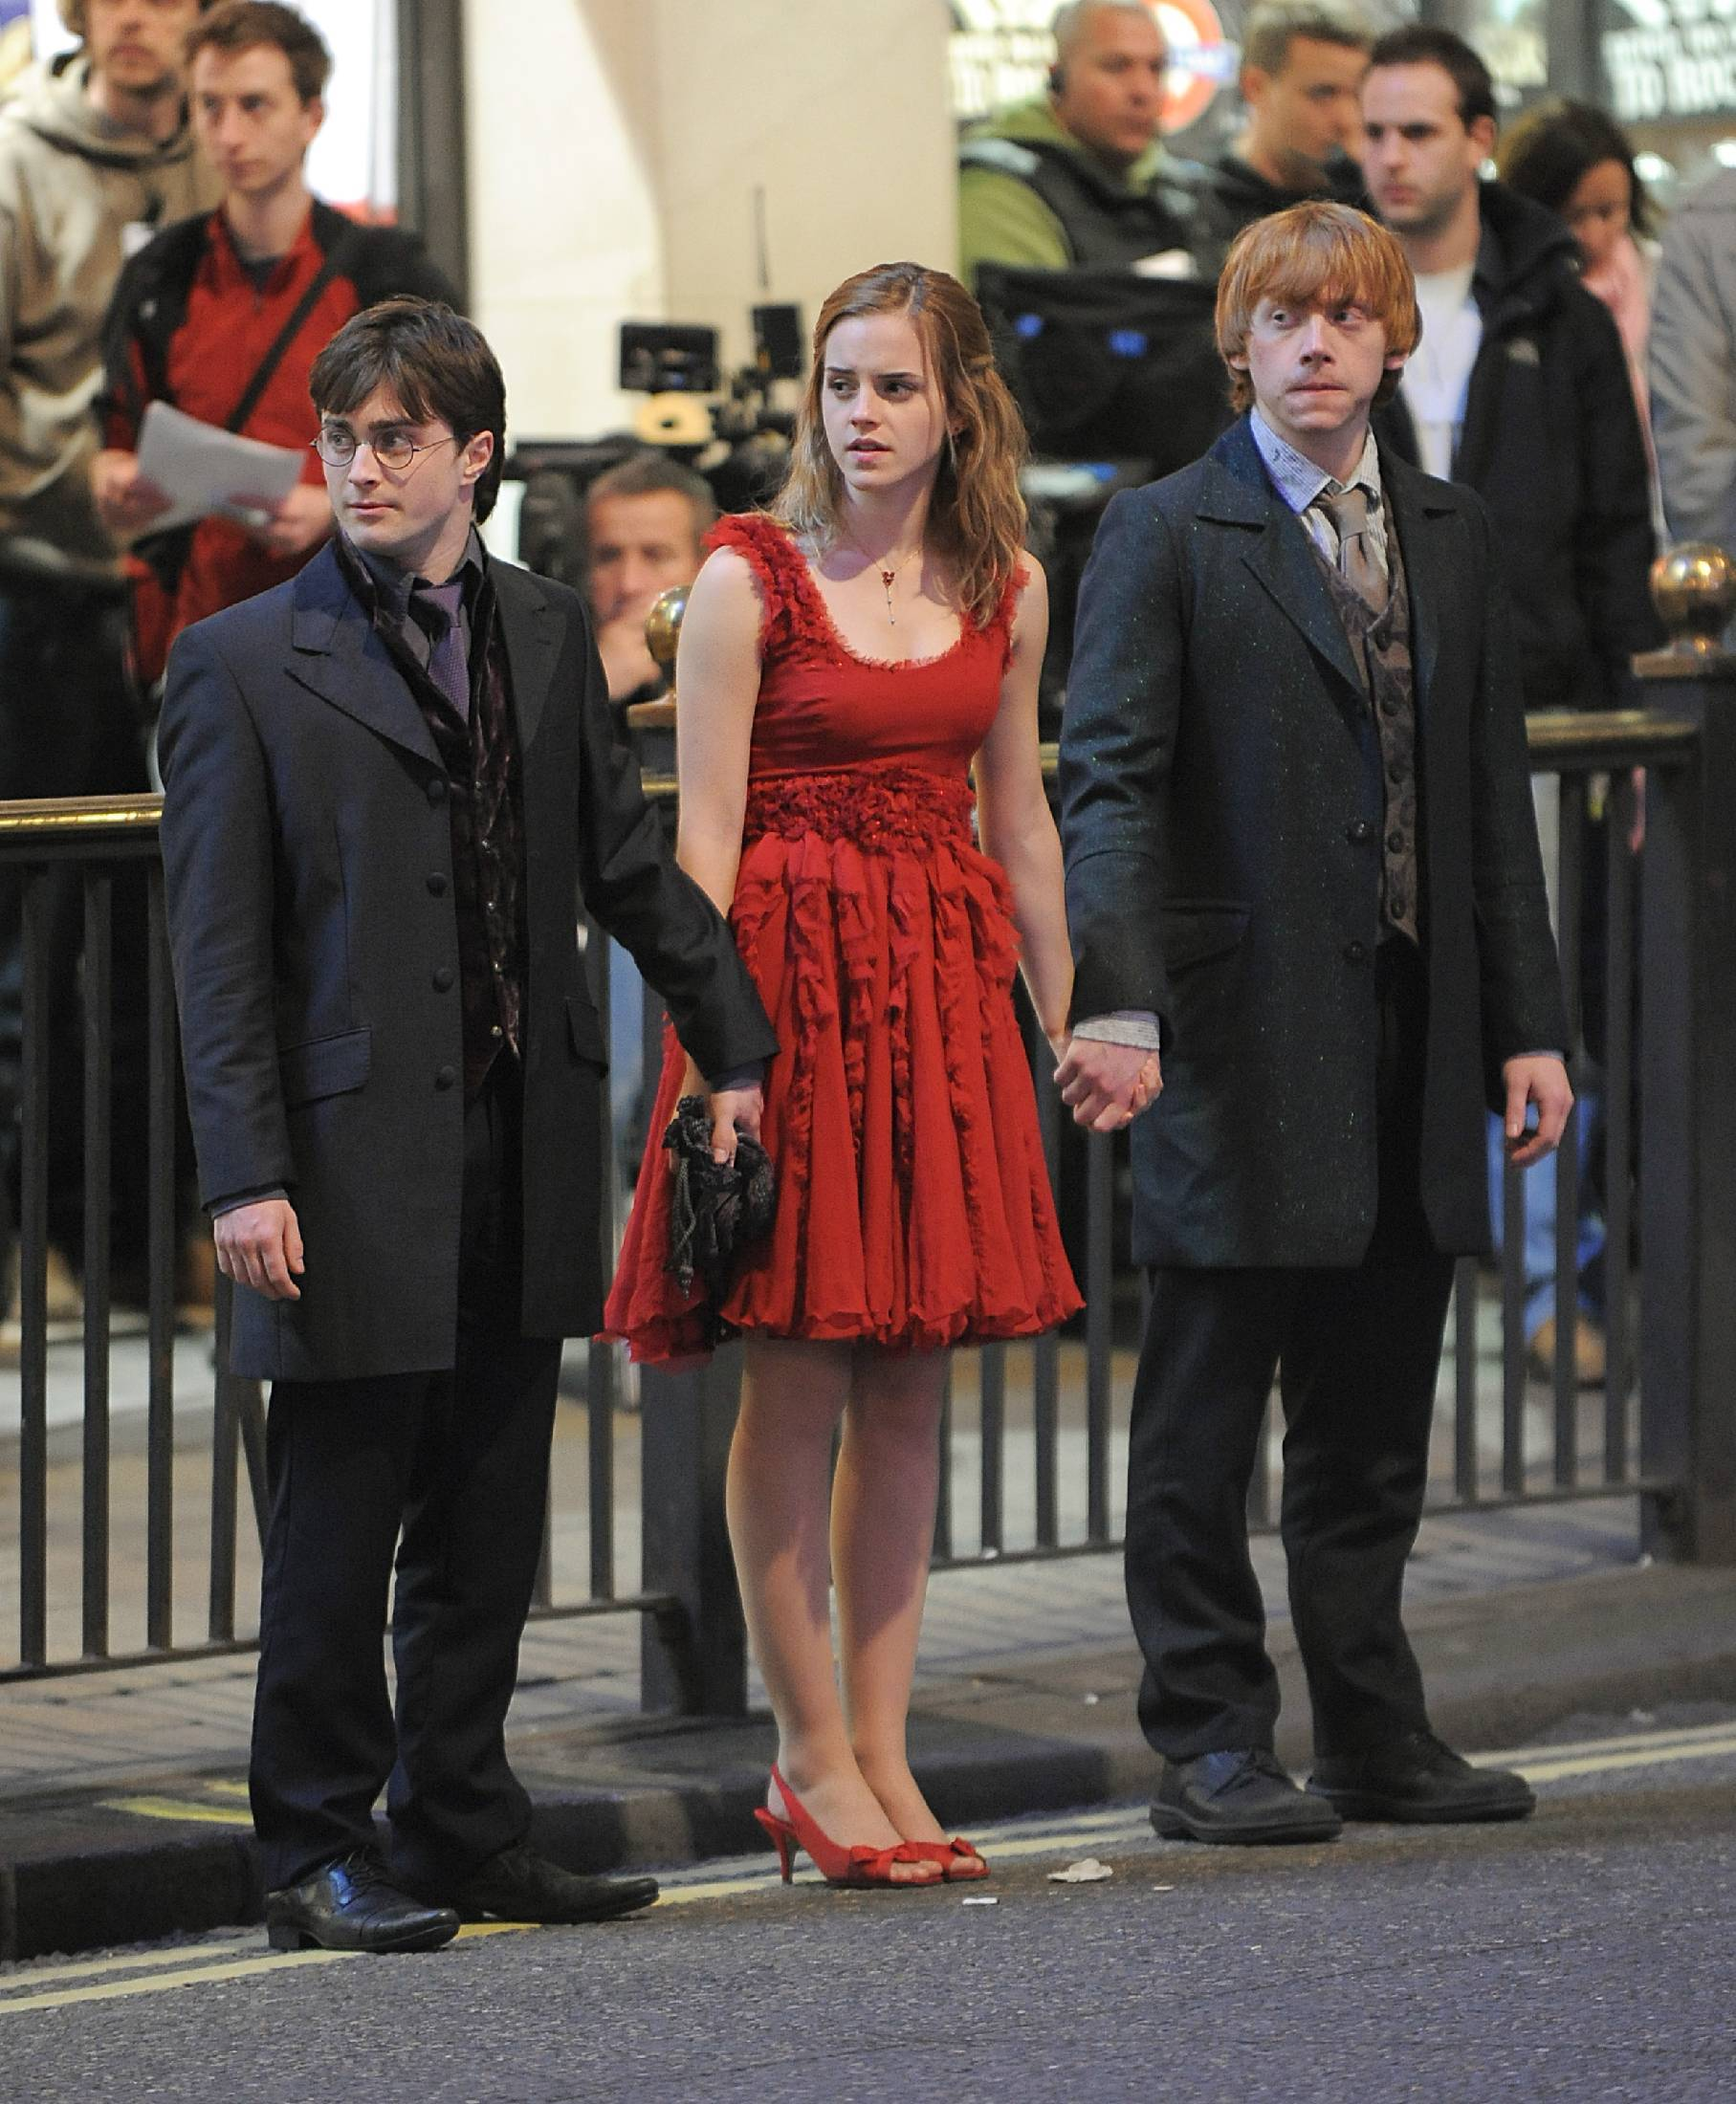 Emma Watson And Daniel Radcliffe Holding Hands The Trio in DH (holdin...